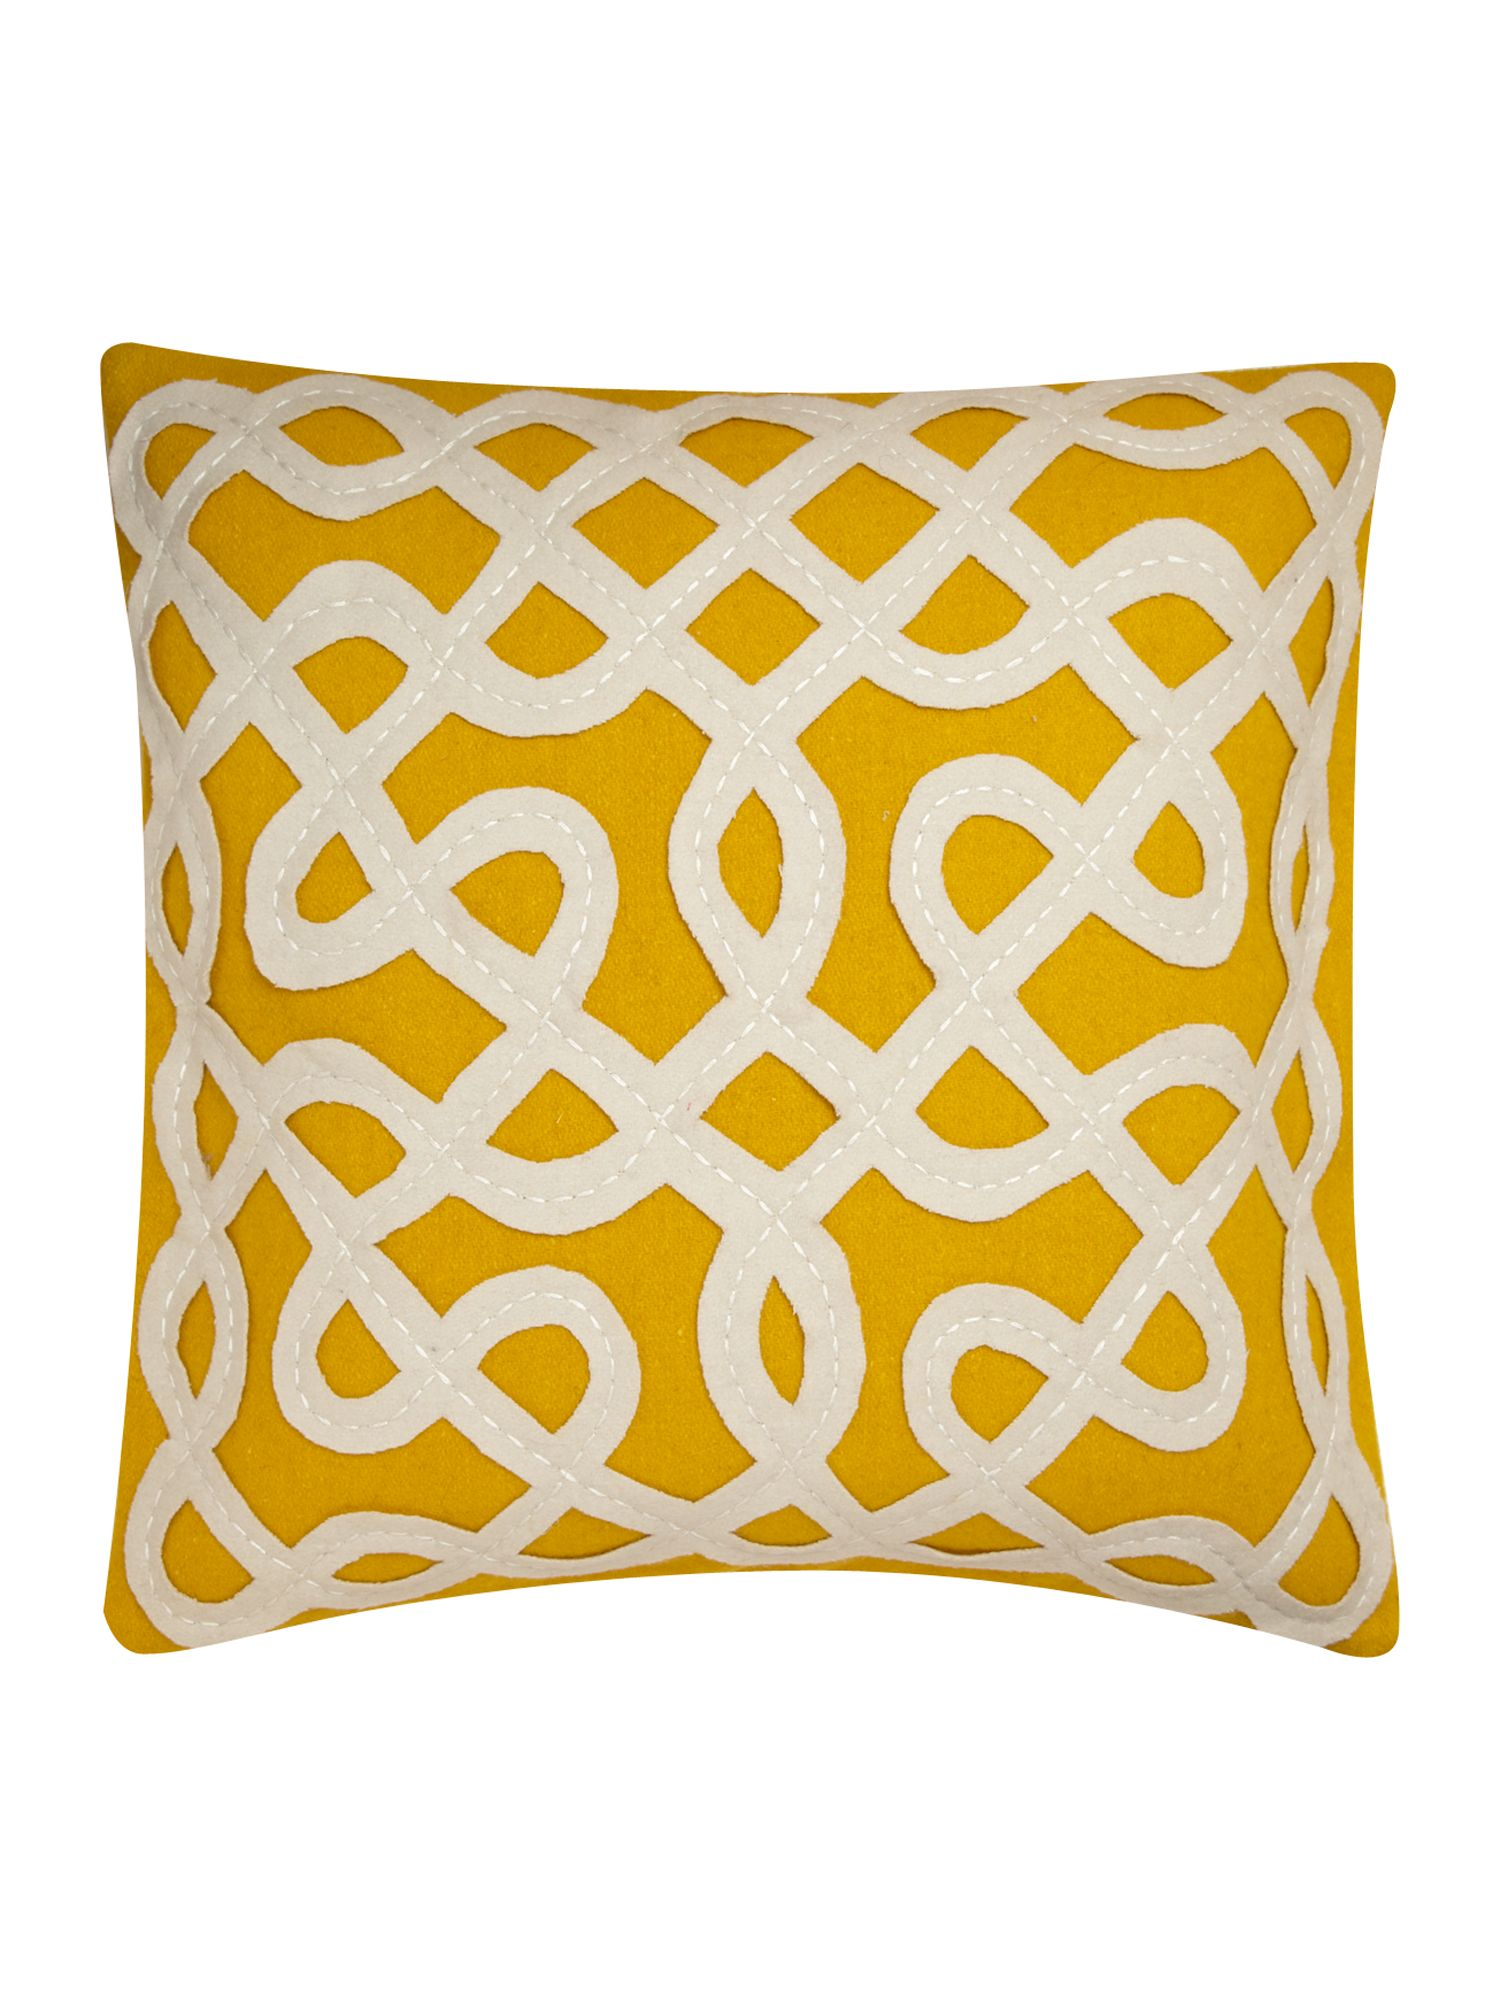 Maze citrine lounge cushion